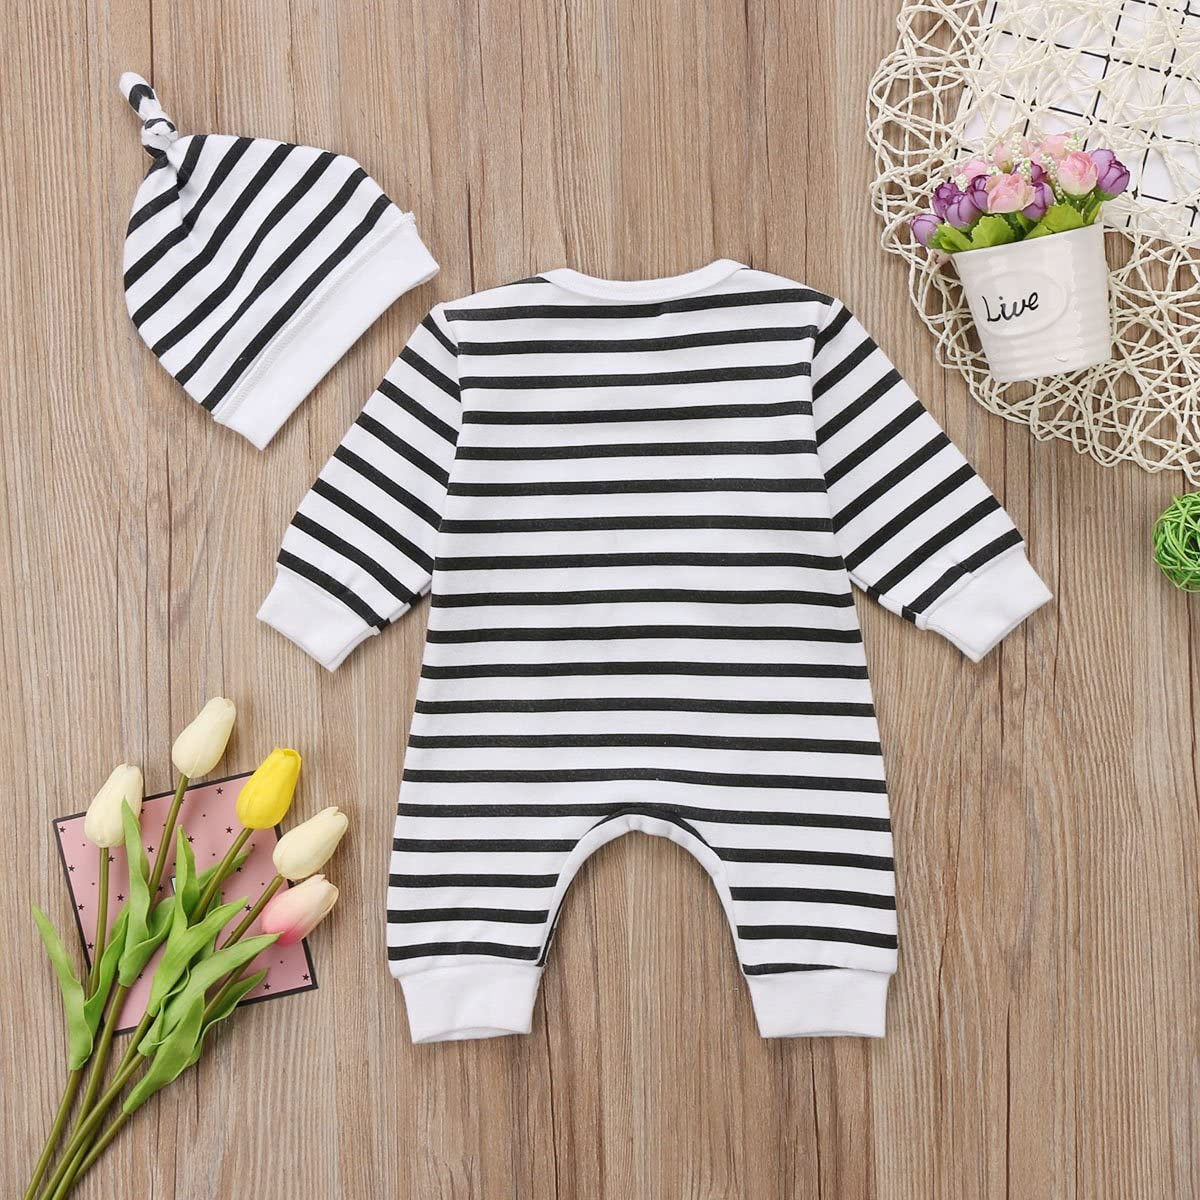 Annvivi One Piece Cotton Baby Boys Girls Striped Romper Pajamas with Hat Set